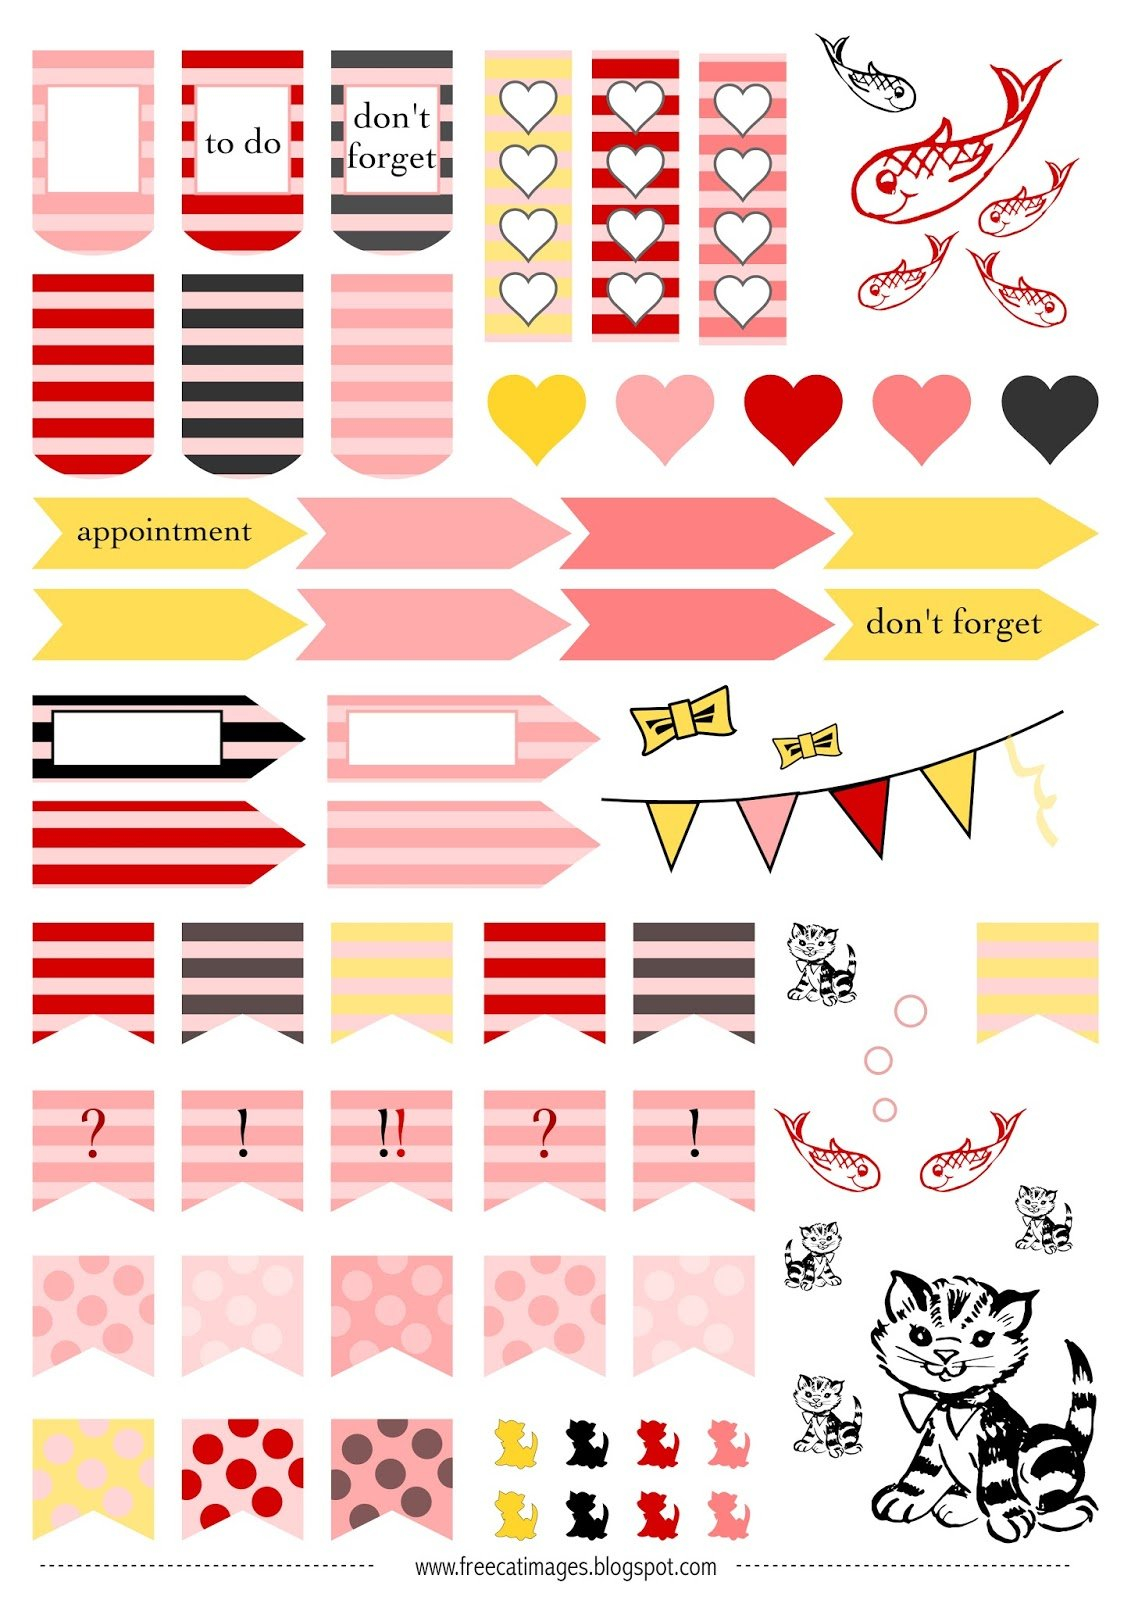 Free Cat Images: Free Printable Planner Stickers - Cats within Free Happy Planner Stickers Printable